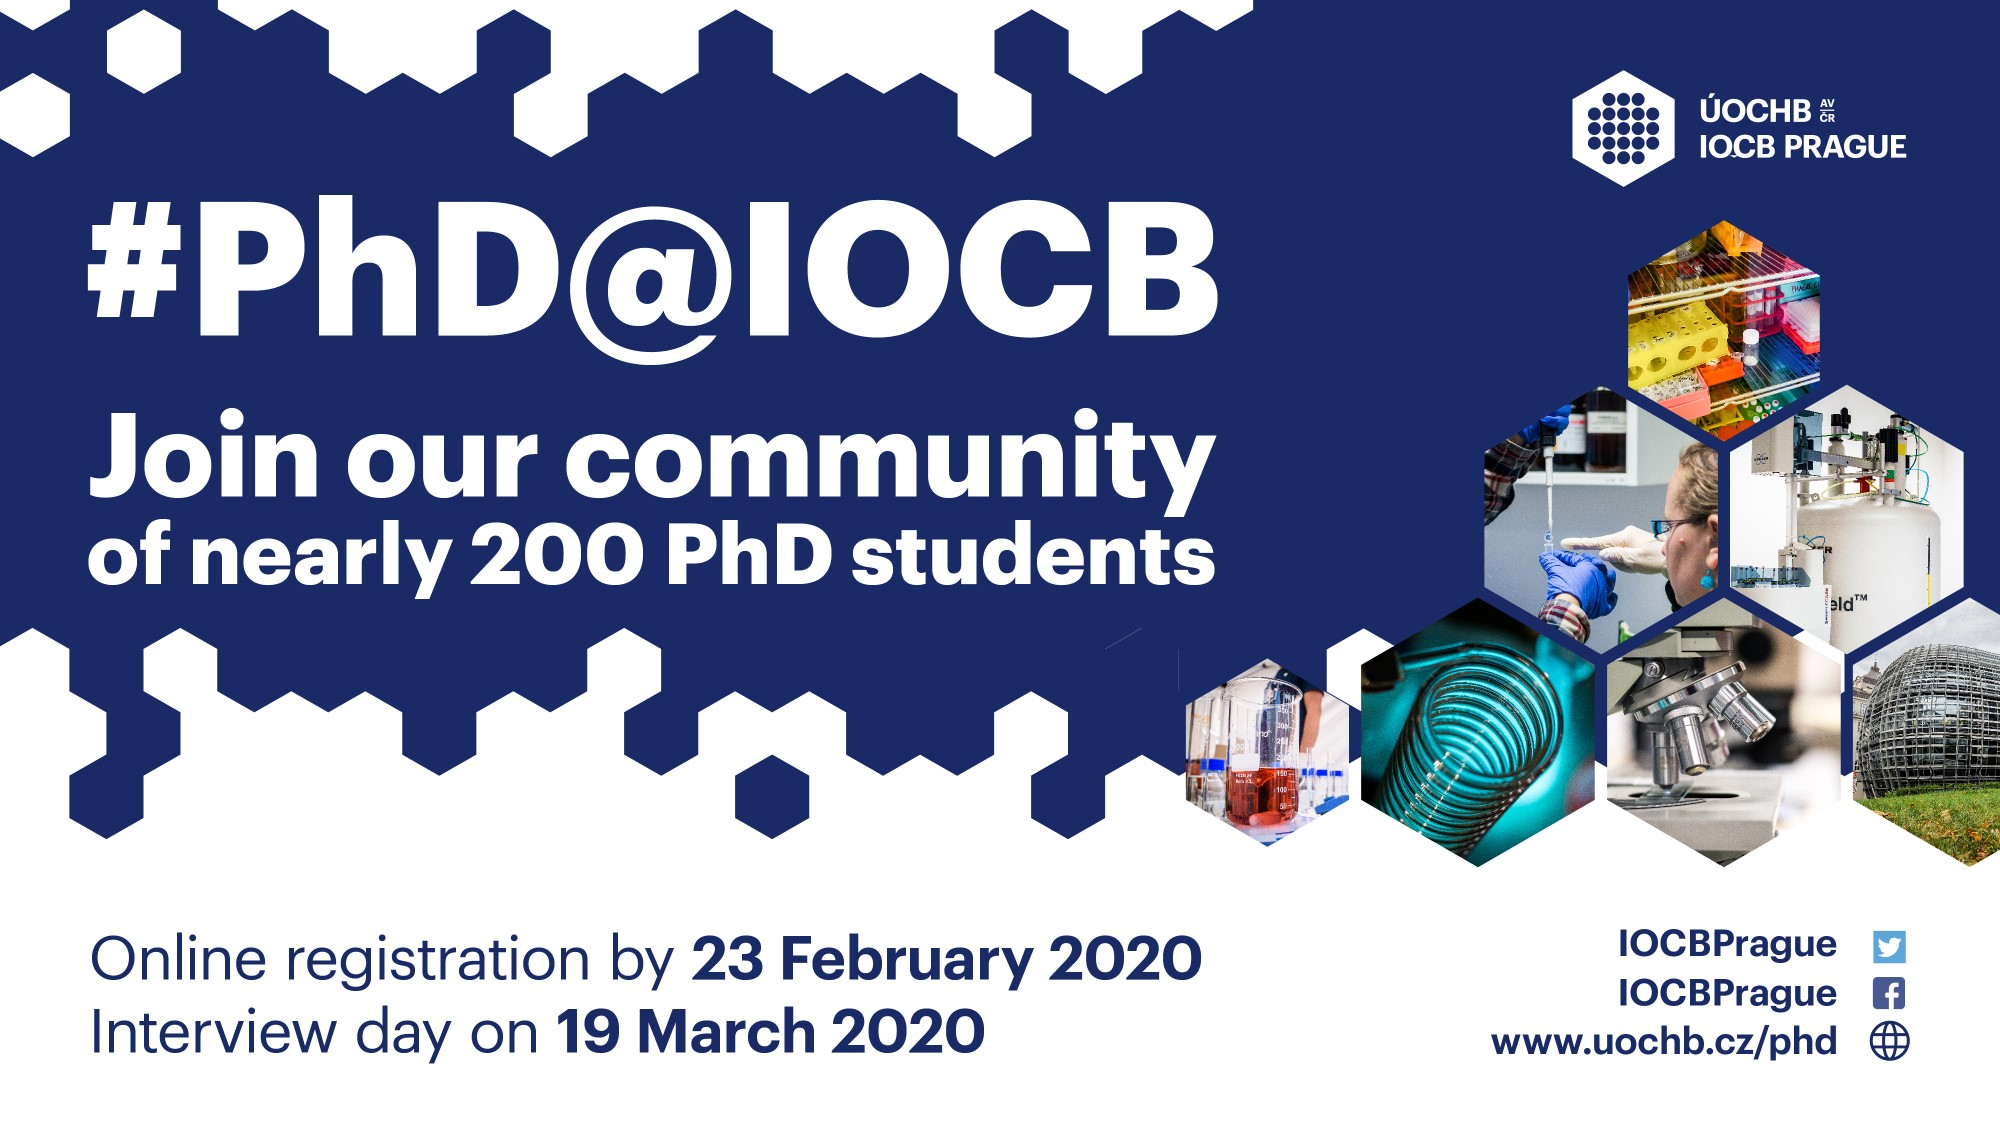 PhD projects at IOCB Prague – Call for Applications 2020